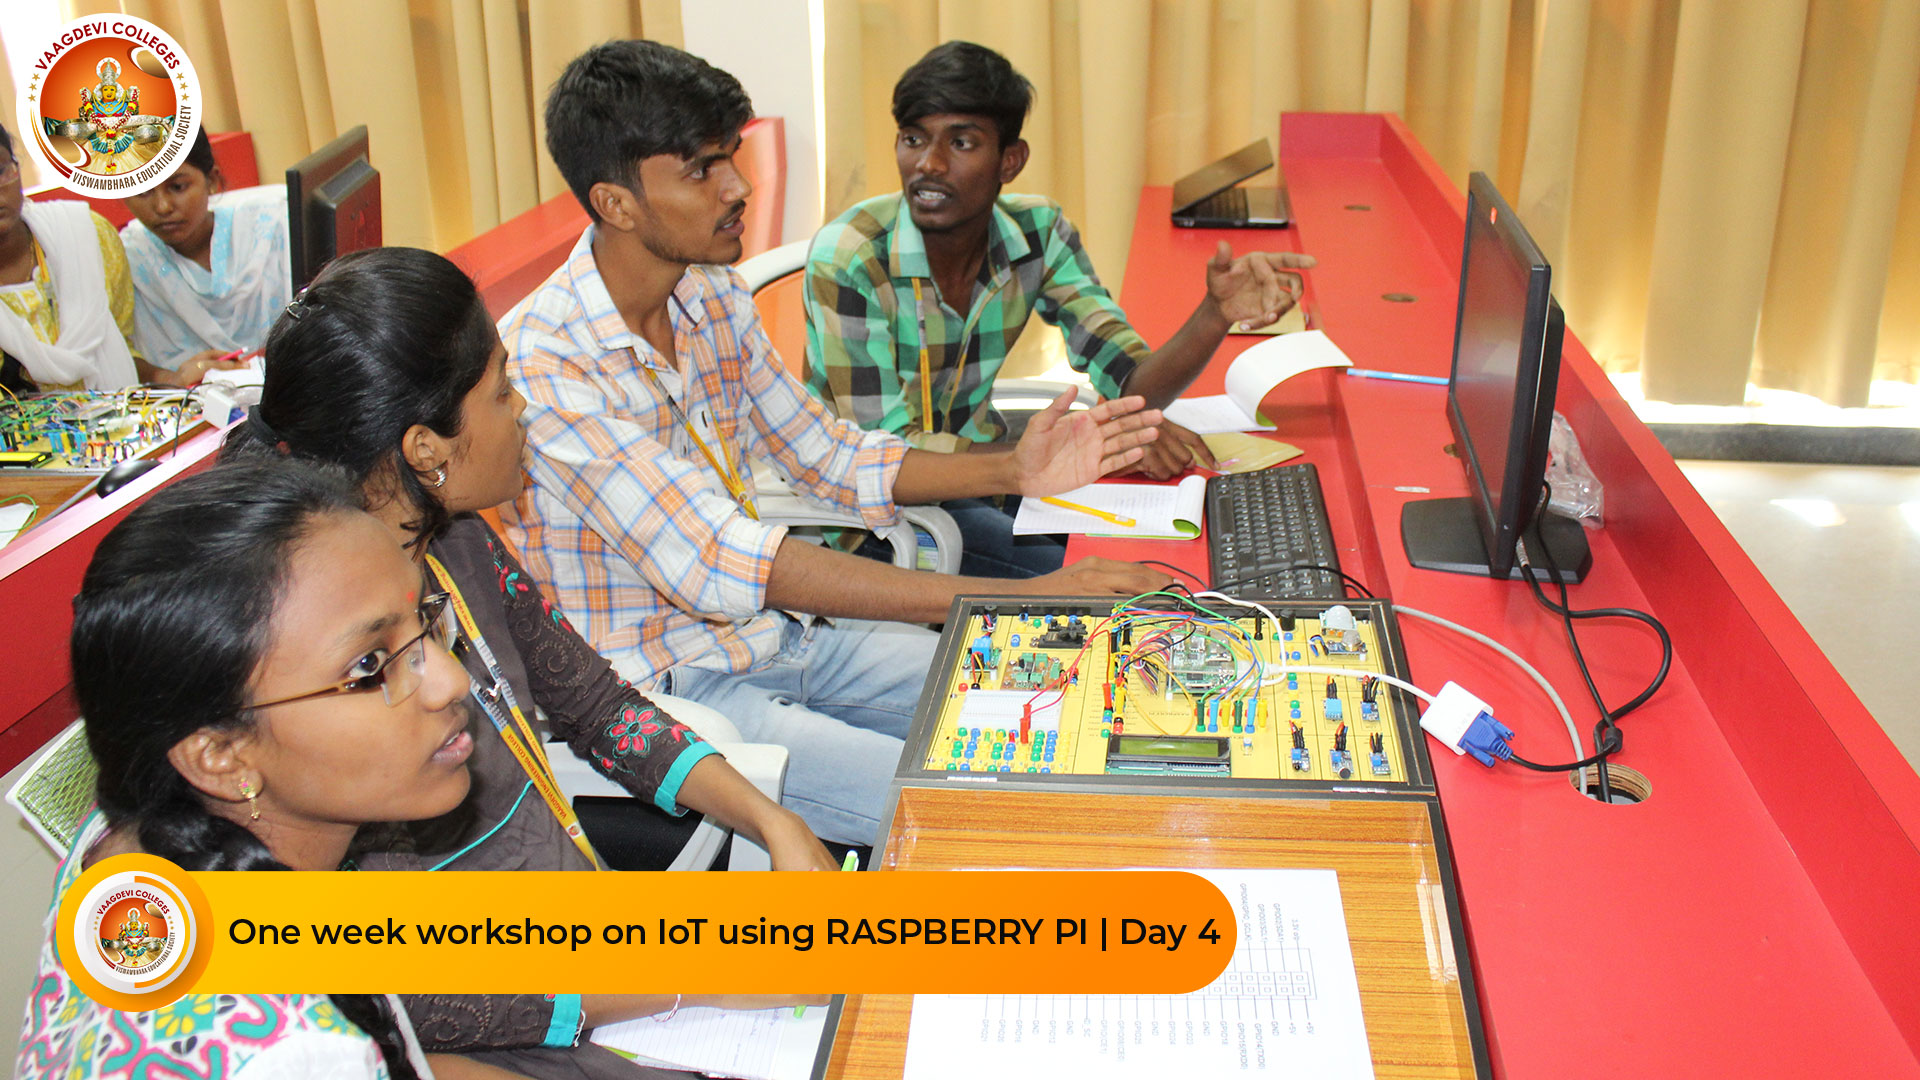 ONE WEEK WORKSHOP ON IOT USING RASPBERRY PI DAY 4